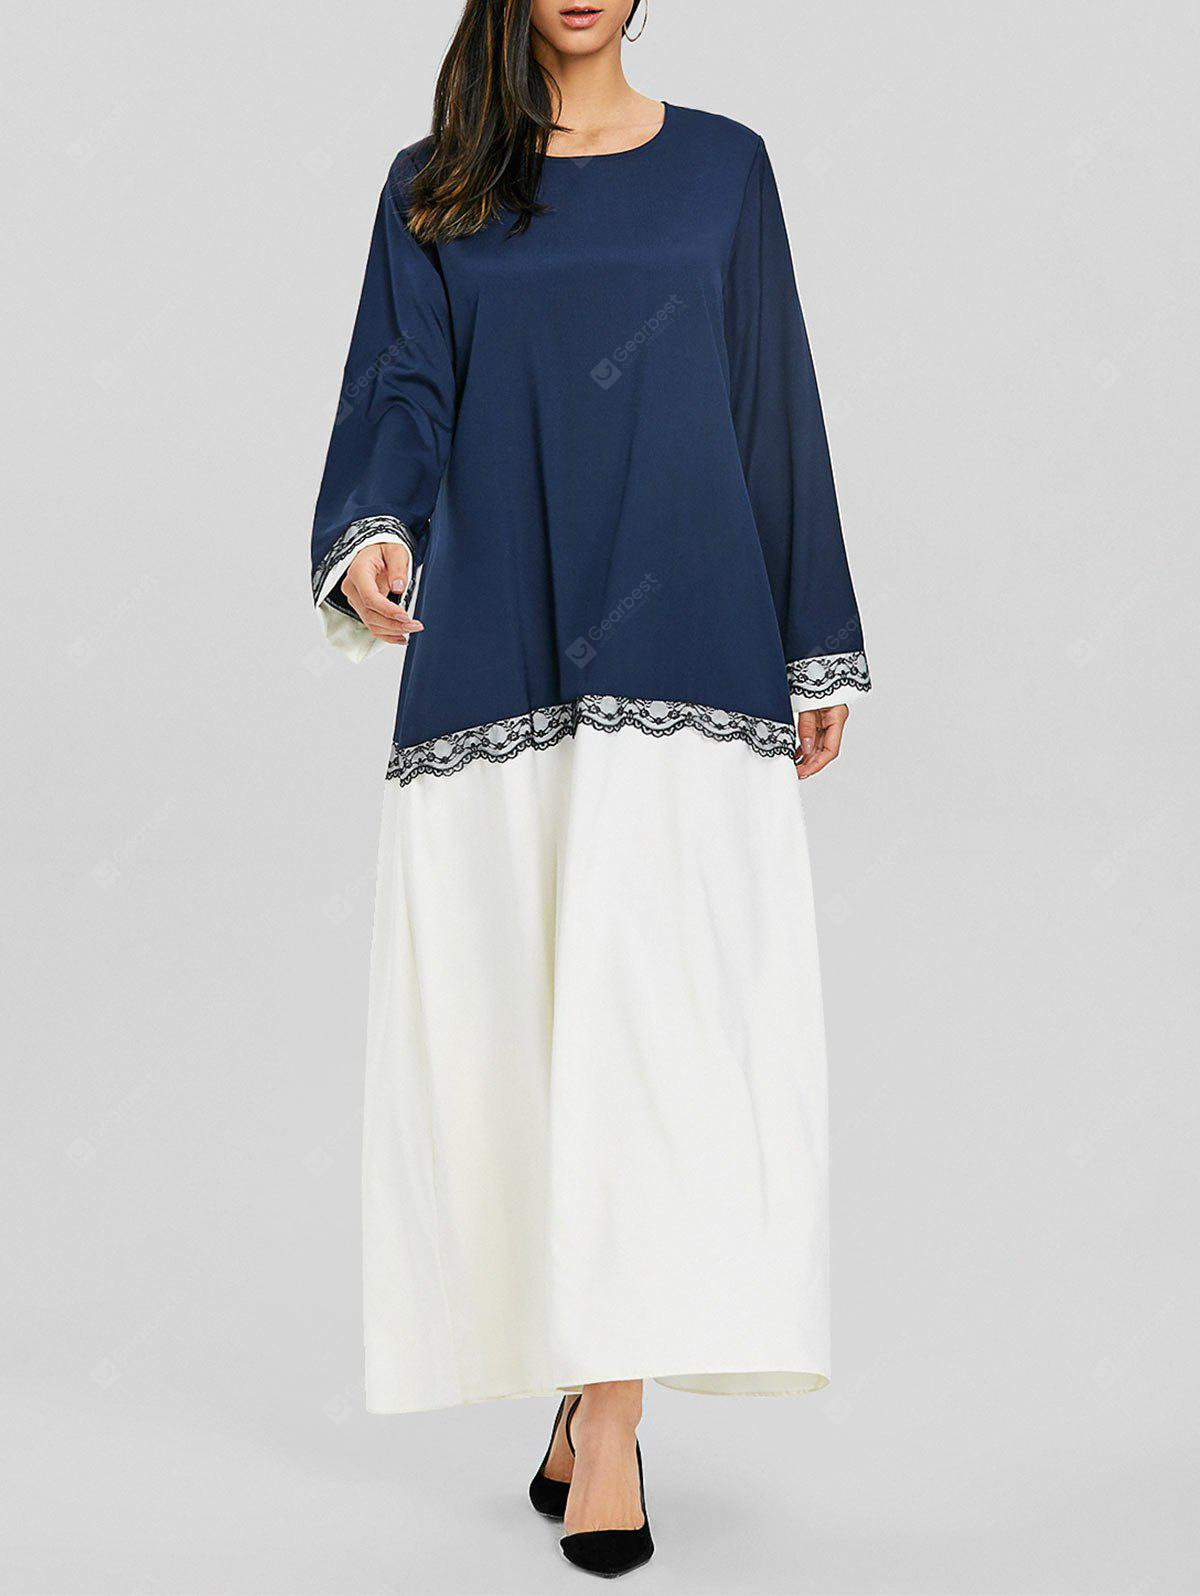 Two Tone Middle Eastern Maxi Dress